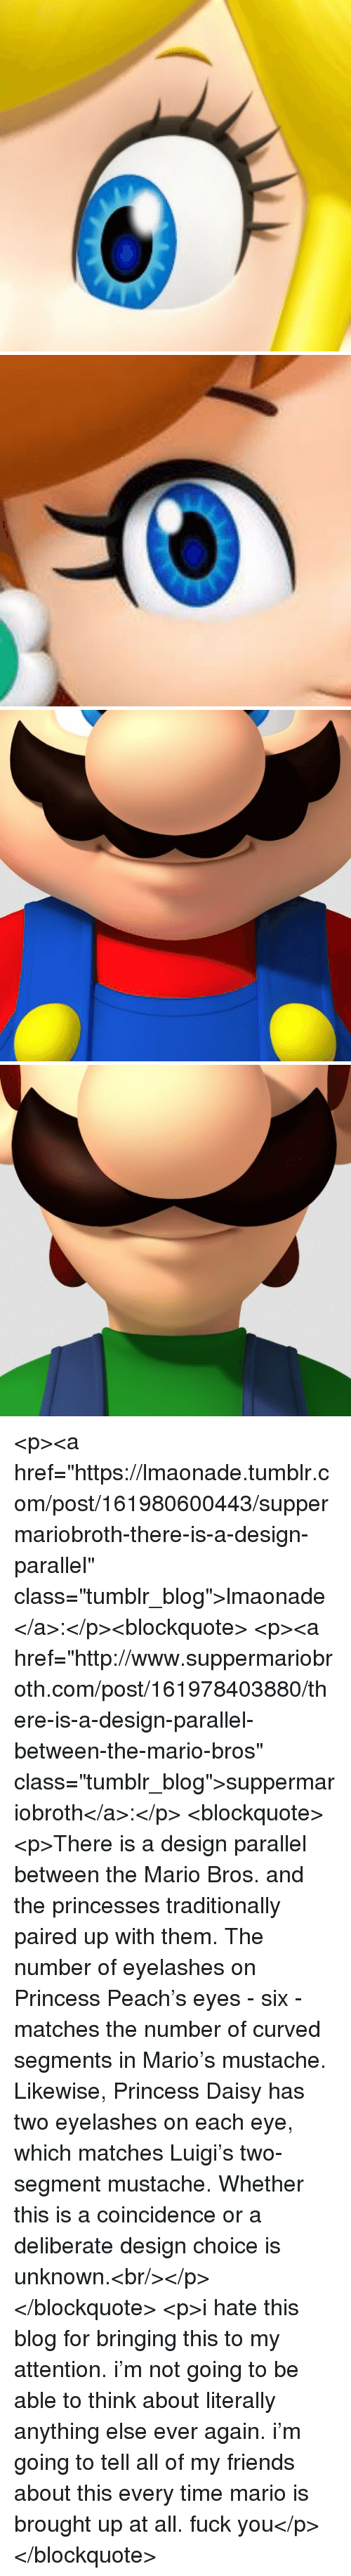 """Friends, Fuck You, and Tumblr: <p><a href=""""https://lmaonade.tumblr.com/post/161980600443/suppermariobroth-there-is-a-design-parallel"""" class=""""tumblr_blog"""">lmaonade</a>:</p><blockquote> <p><a href=""""http://www.suppermariobroth.com/post/161978403880/there-is-a-design-parallel-between-the-mario-bros"""" class=""""tumblr_blog"""">suppermariobroth</a>:</p> <blockquote><p>There is a design parallel between the Mario Bros. and the princesses traditionally paired up with them. The number of eyelashes on Princess Peach's eyes - six - matches the number of curved segments in Mario's mustache. Likewise, Princess Daisy has two eyelashes on each eye, which matches Luigi's two-segment mustache. Whether this is a coincidence or a deliberate design choice is unknown.<br/></p></blockquote>  <p>i hate this blog for bringing this to my attention. i'm not going to be able to think about literally anything else ever again. i'm going to tell all of my friends about this every time mario is brought up at all. fuck you</p> </blockquote>"""